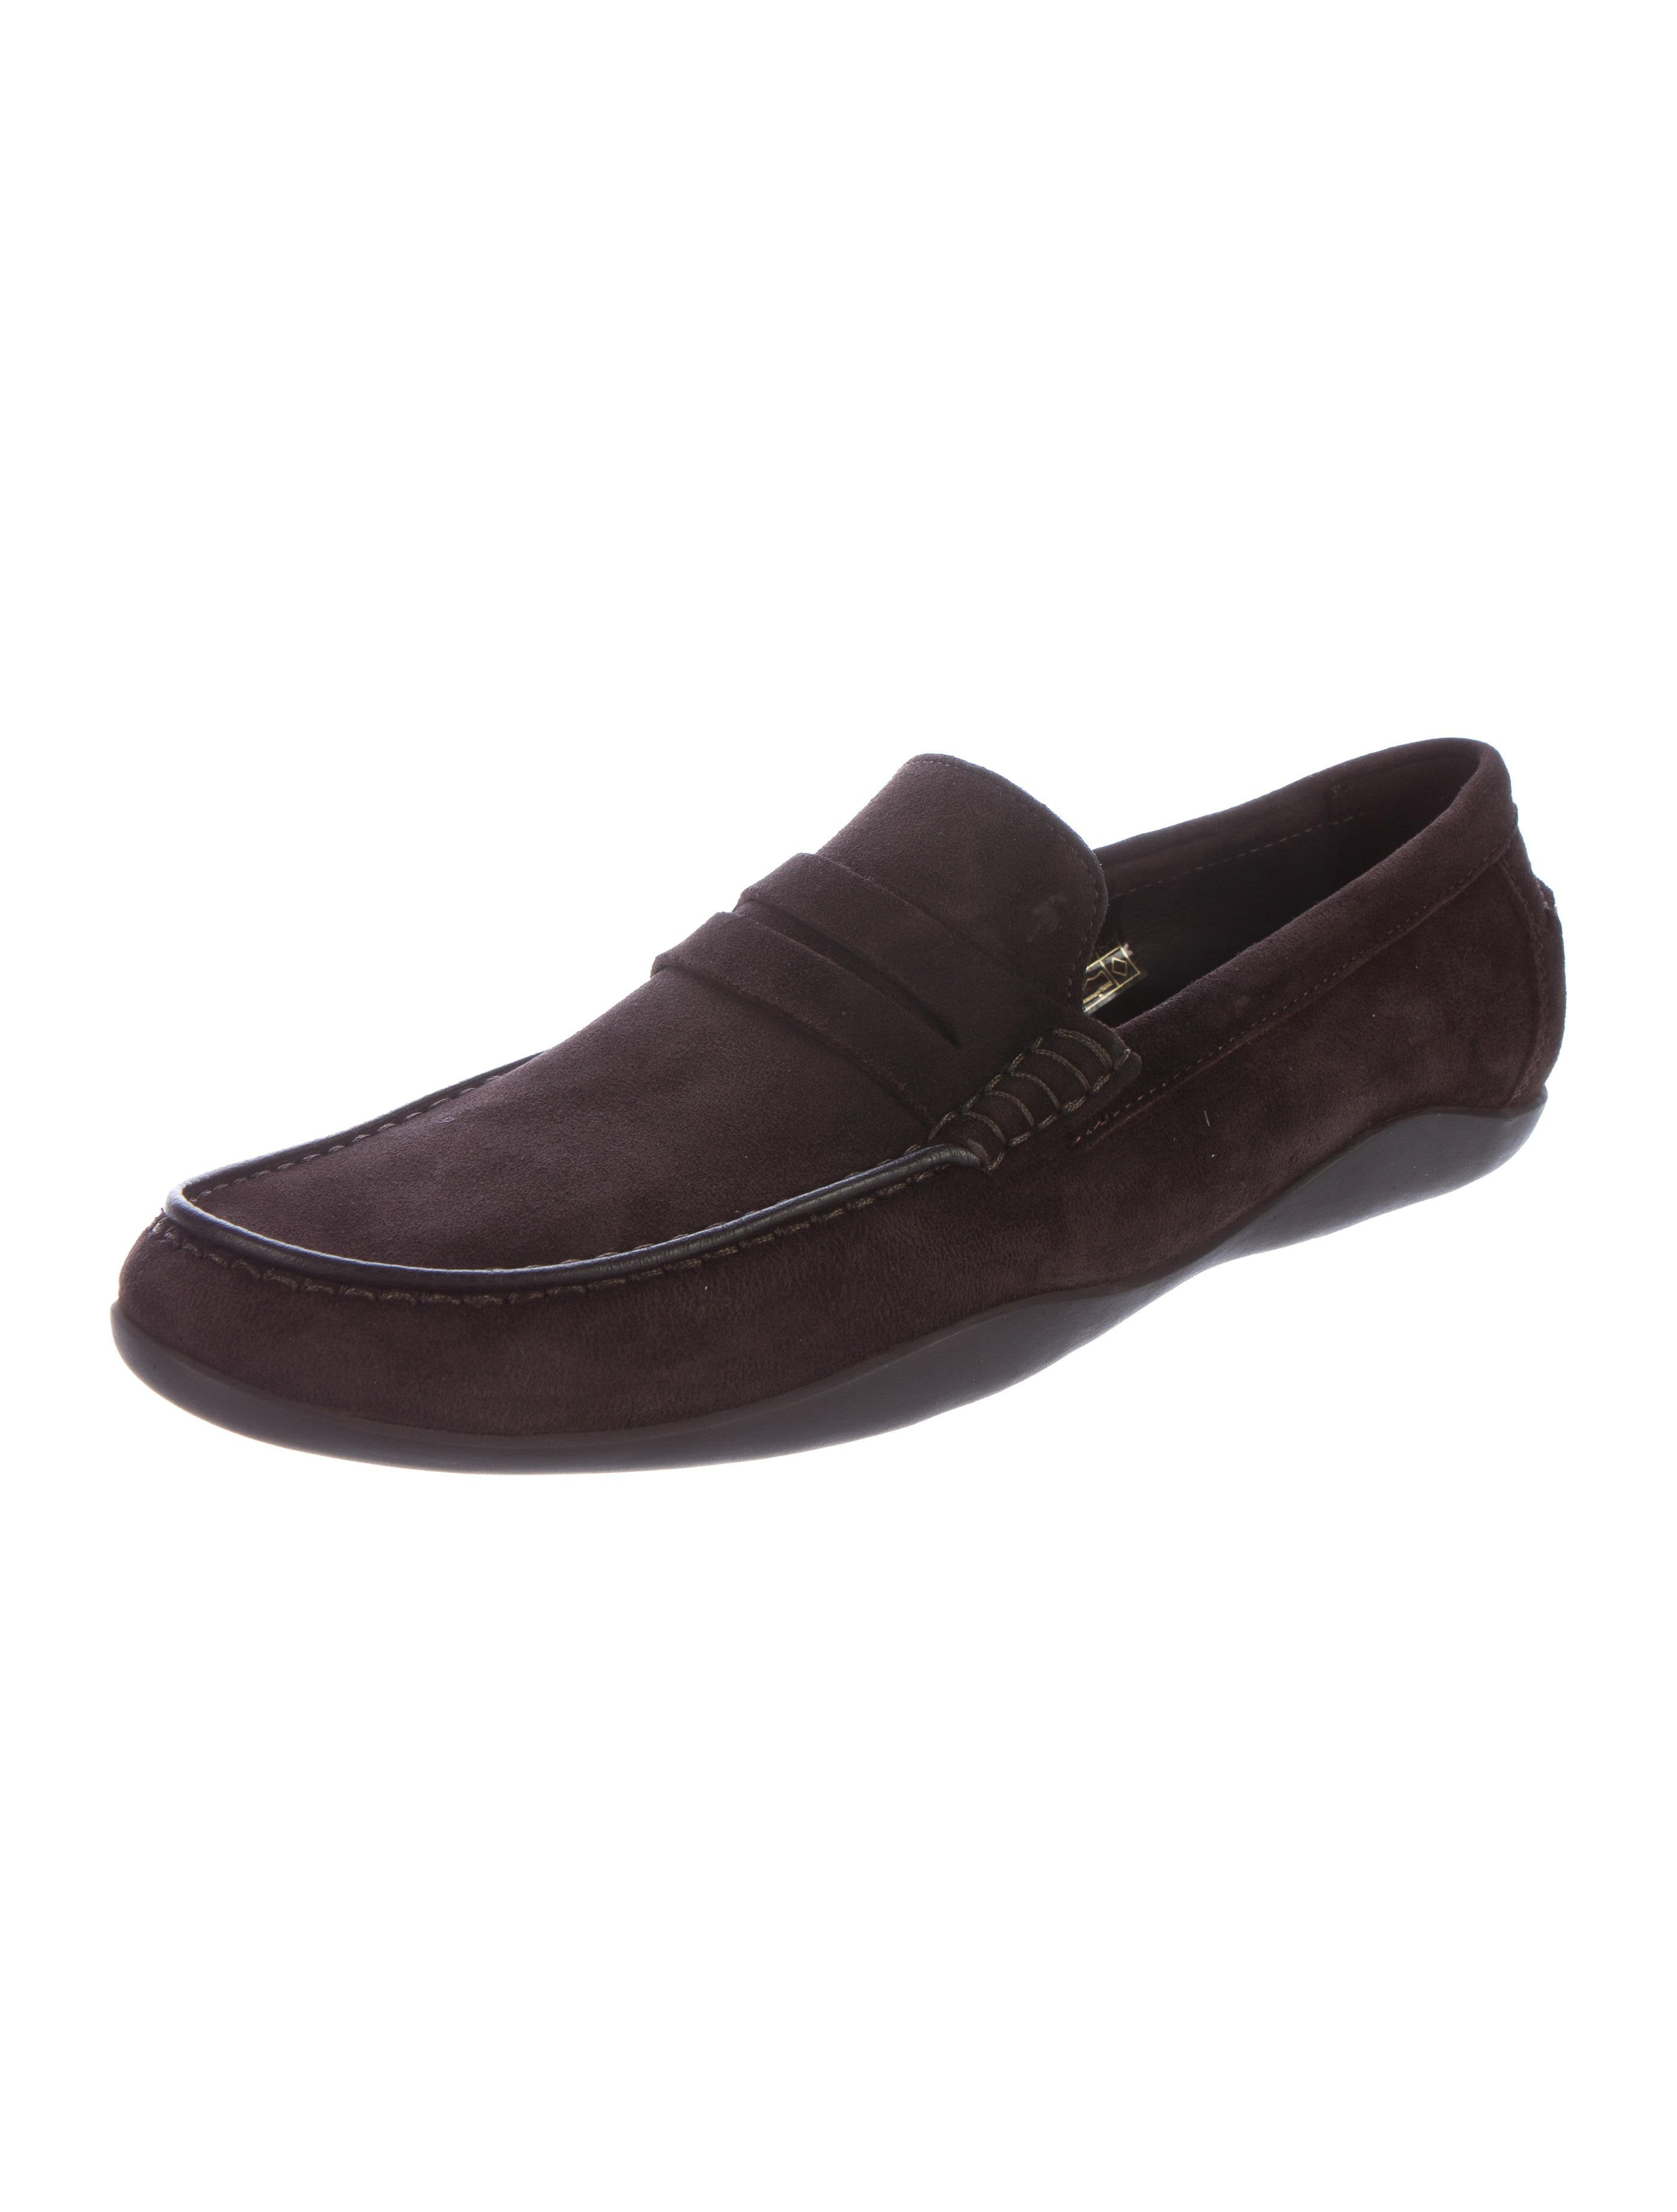 harrys of basel driving loafers shoes